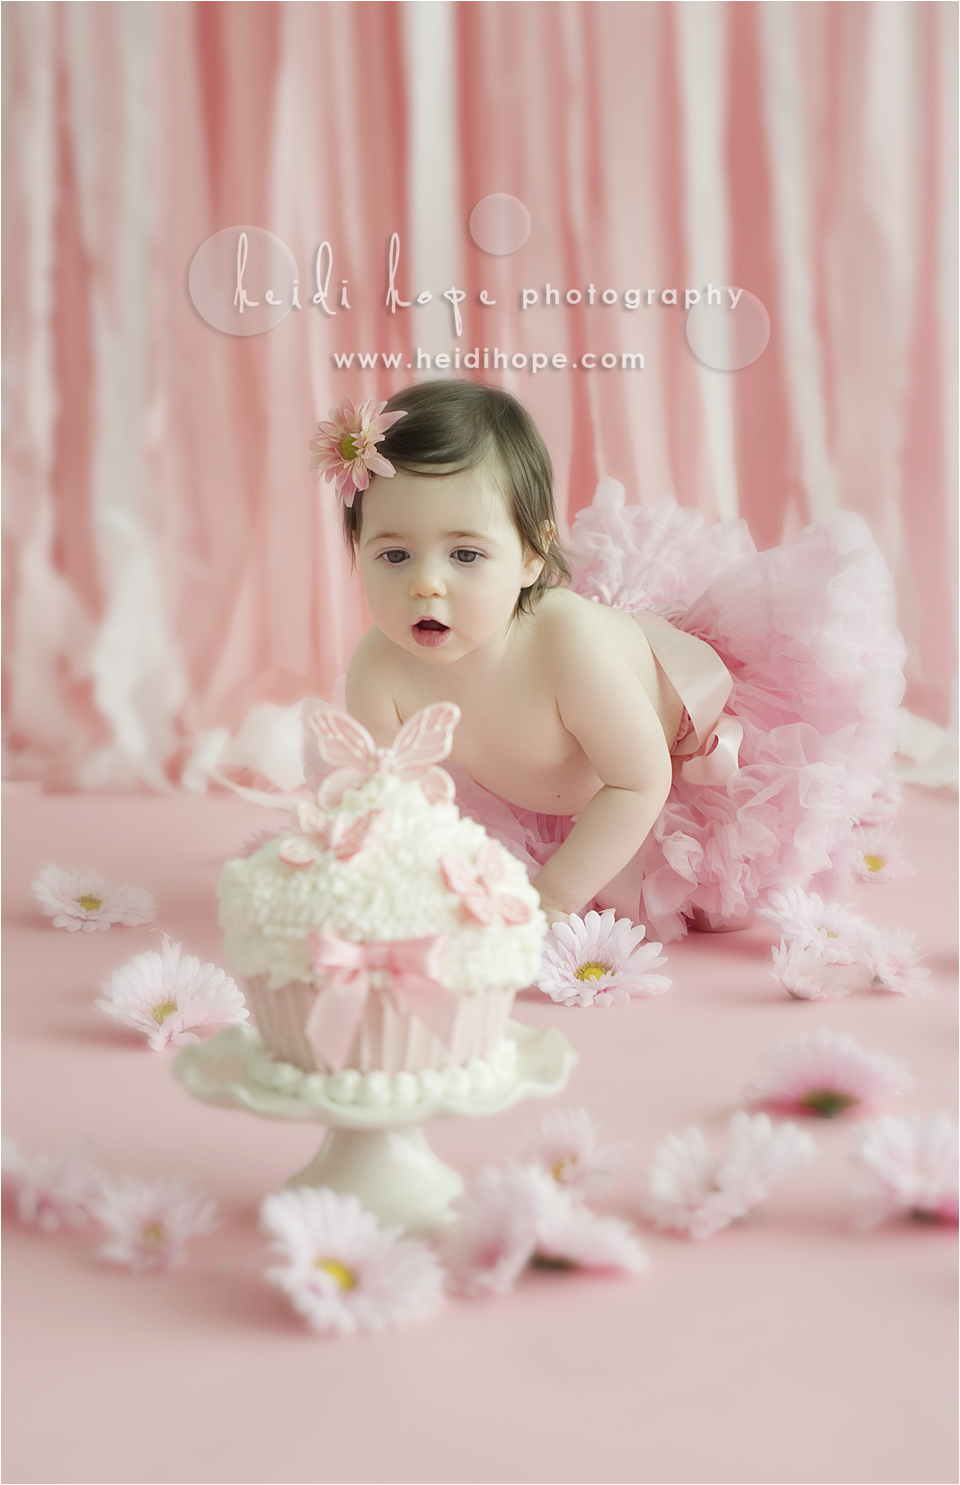 baby o turns 1 year old rhode island and central massachusetts first birthday cake smash portrait photographer